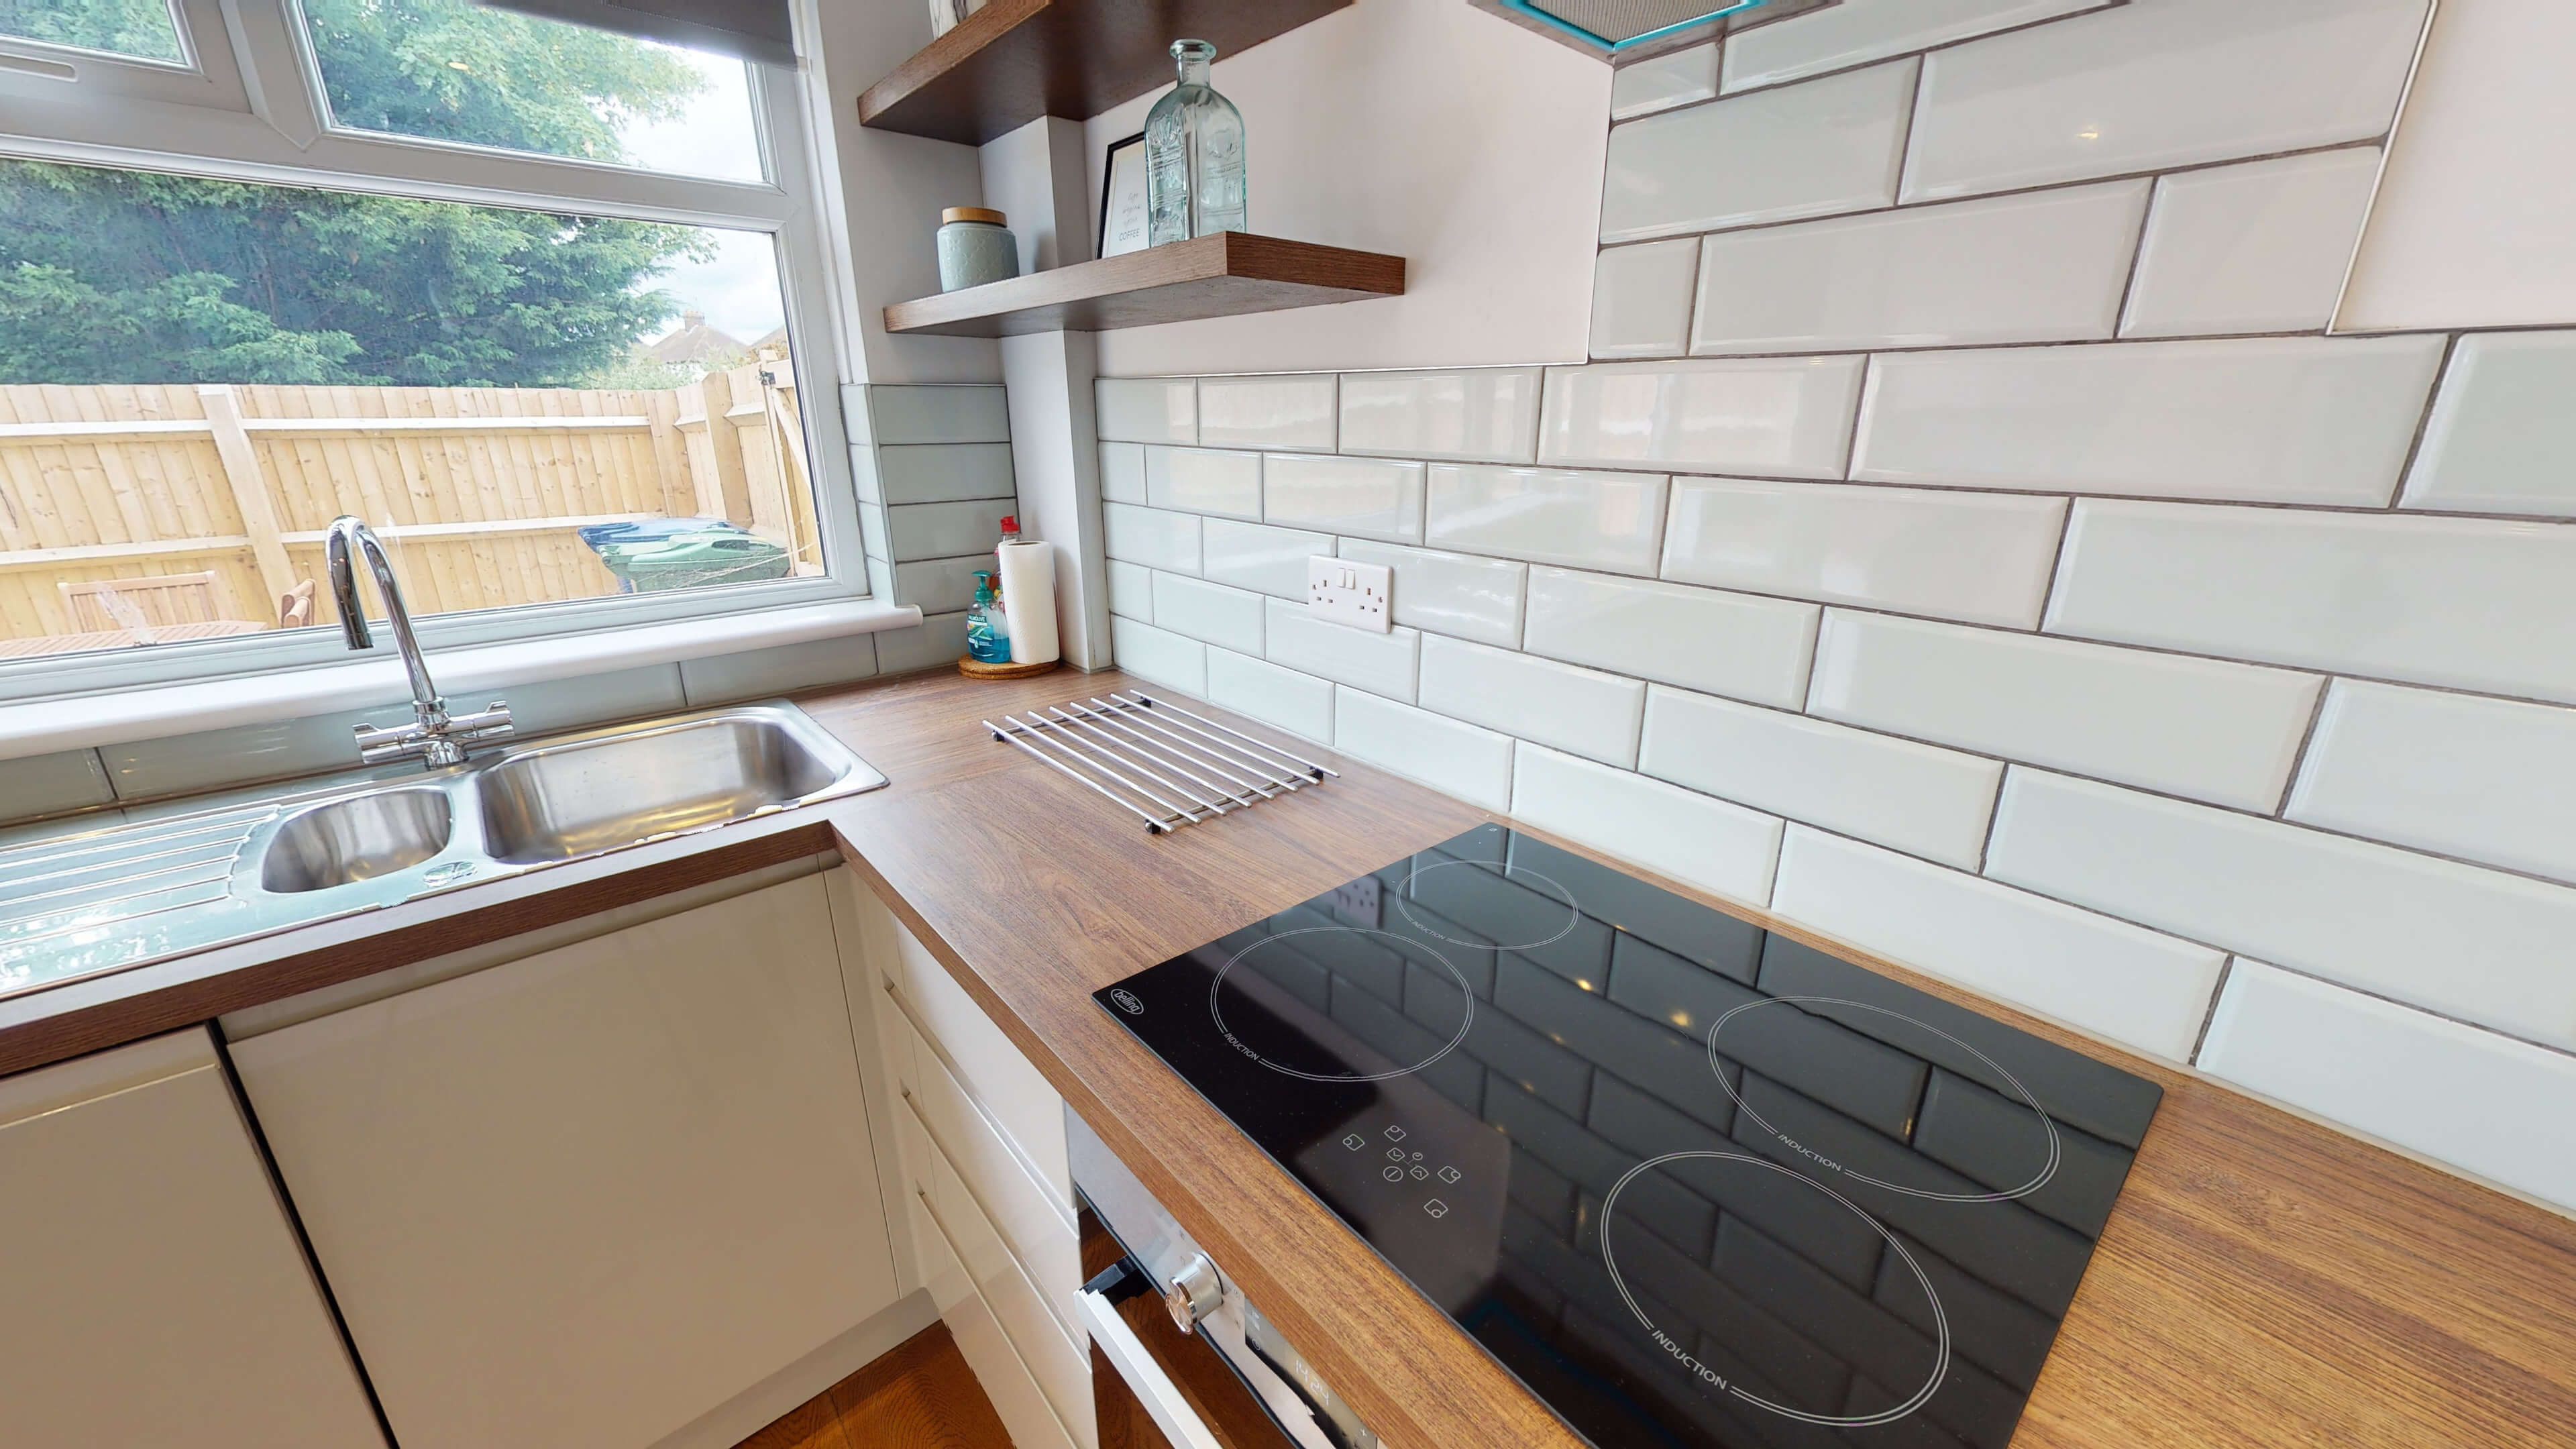 Hollow Way House Kitchen Showing Hob